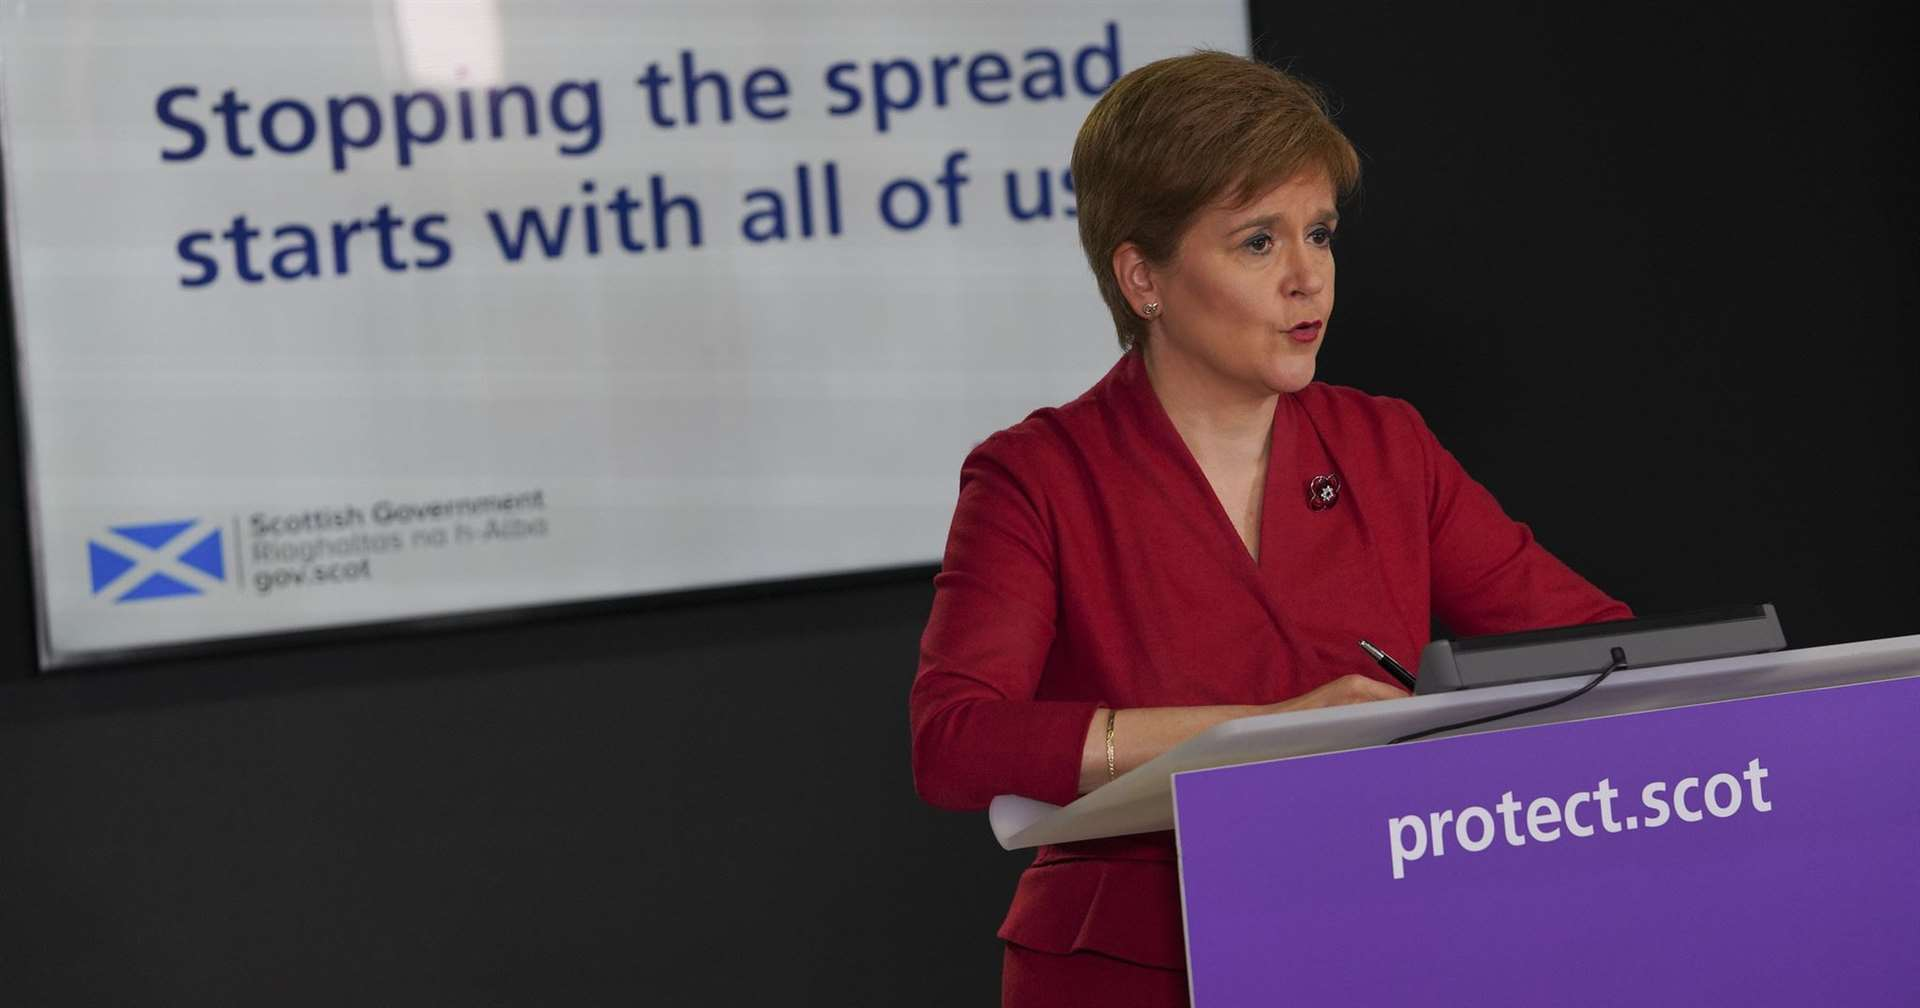 Covid: Action may be needed to halt new strain, Nicola Sturgeon warns